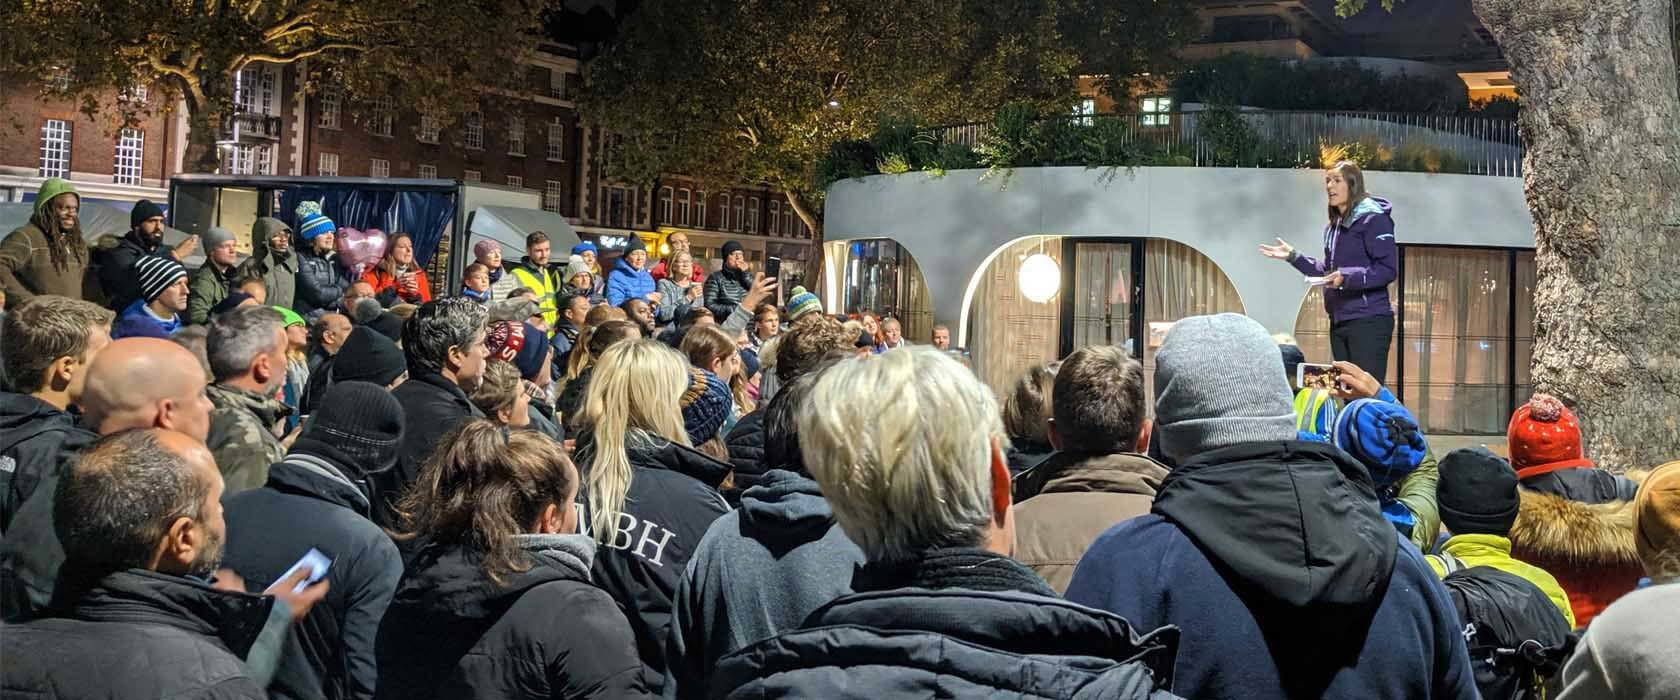 Lucy addresses Sleep Out gathering